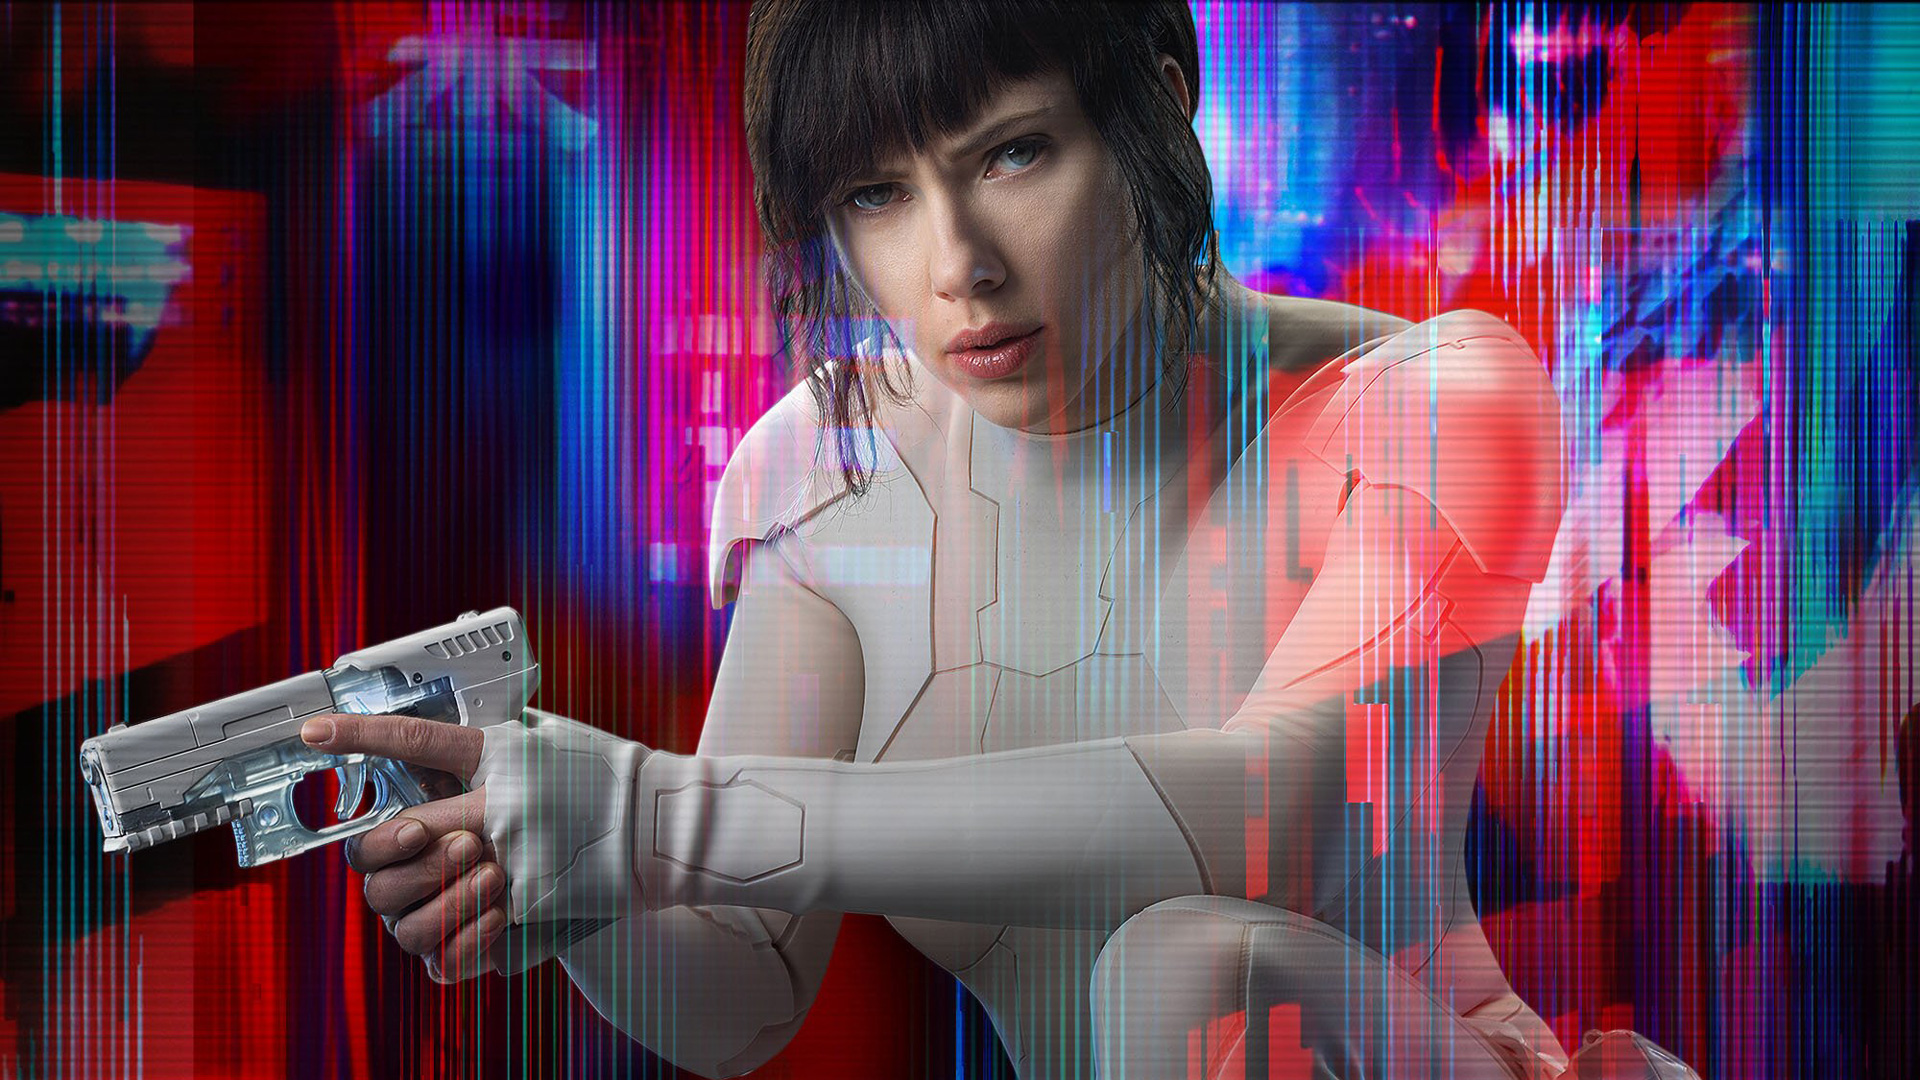 Scarlett Johansson Ghost In The Shell Hd Movies 4k Wallpapers